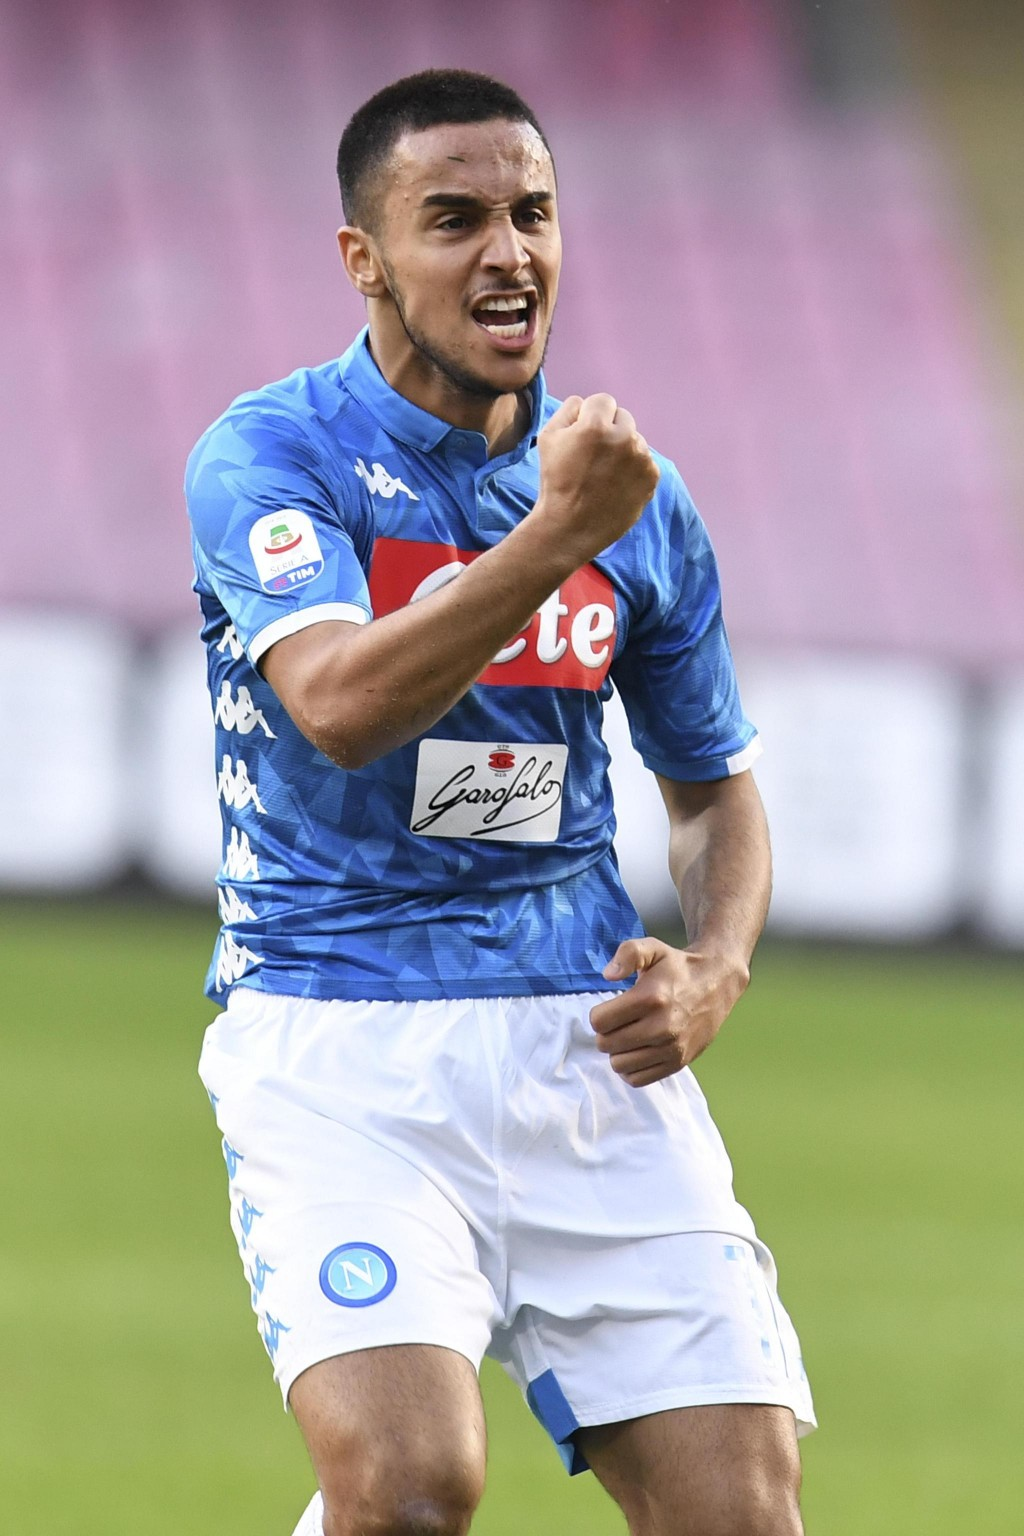 Napoli's Adam Ounas celebrates after scoring his side's second goal during the Serie A soccer match between Napoli and Frosinone, at the San Paolo sta